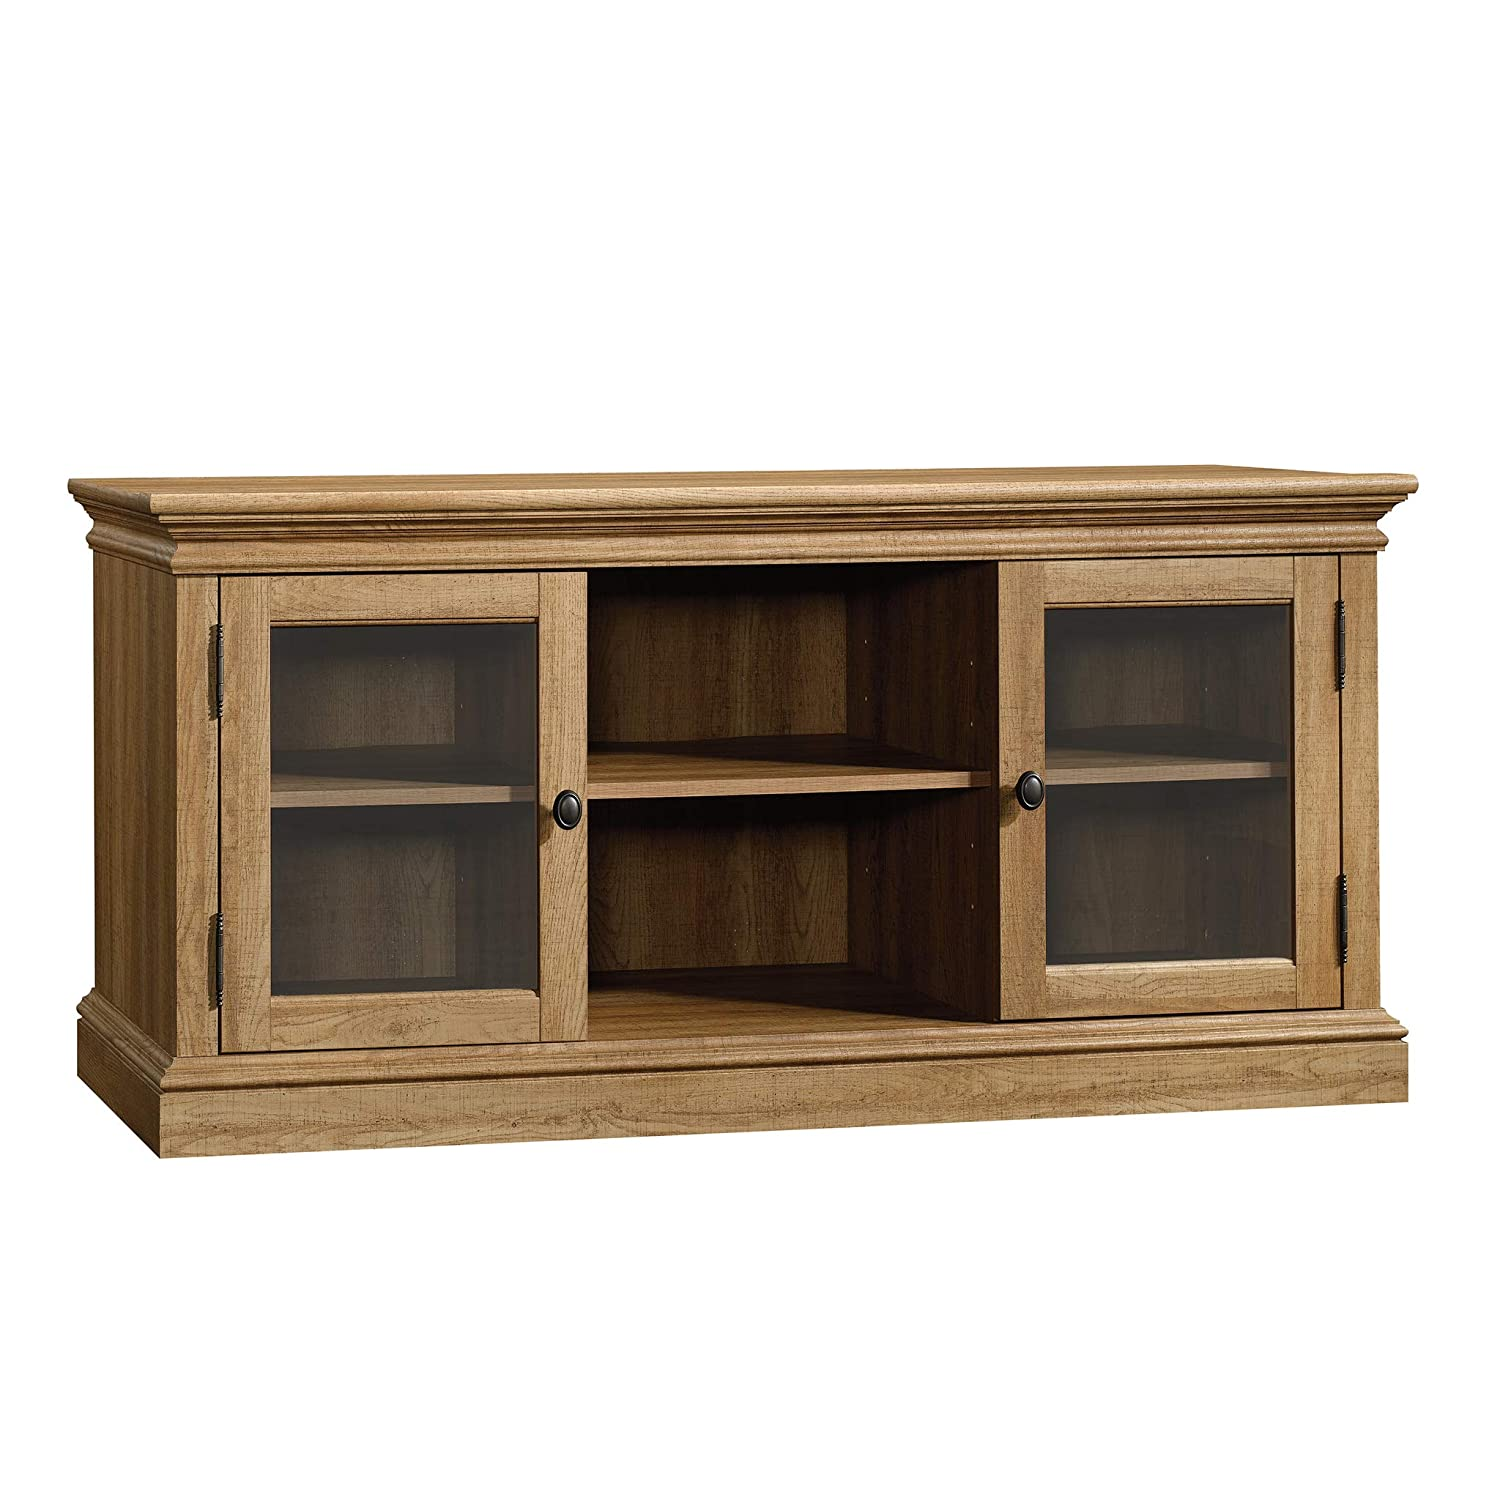 Sauder 414958 Barrister Lane Entertainment Credenza, L: 53.31